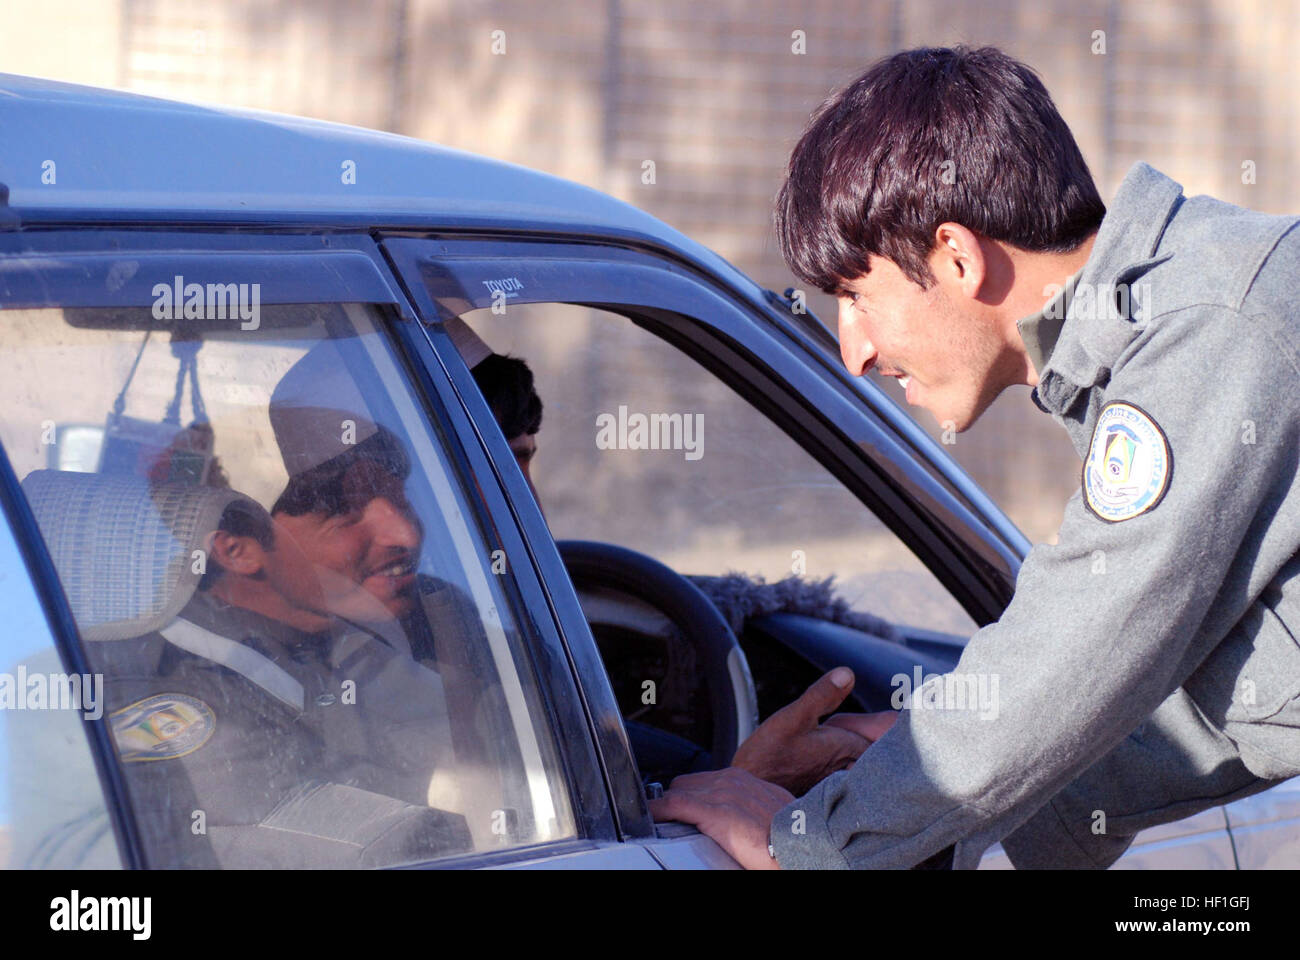 An Afghan border police checks a car at a border crossing road in eastern Khowst. The ABP recently re-structured - Stock Image